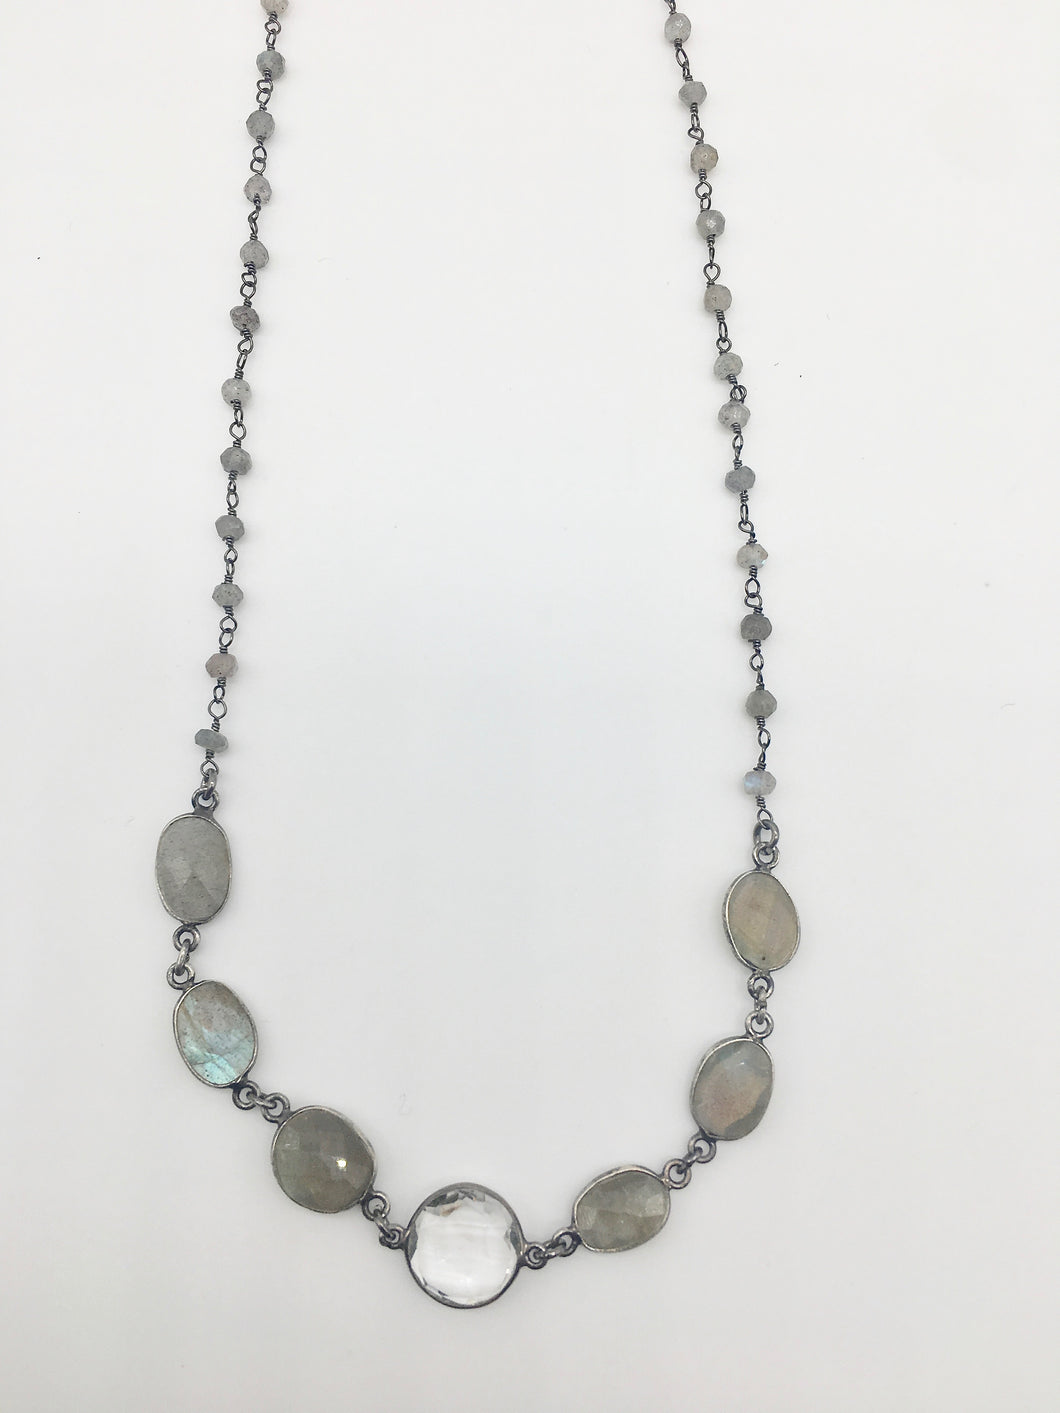 Natural Labradorite and Quartz Necklace